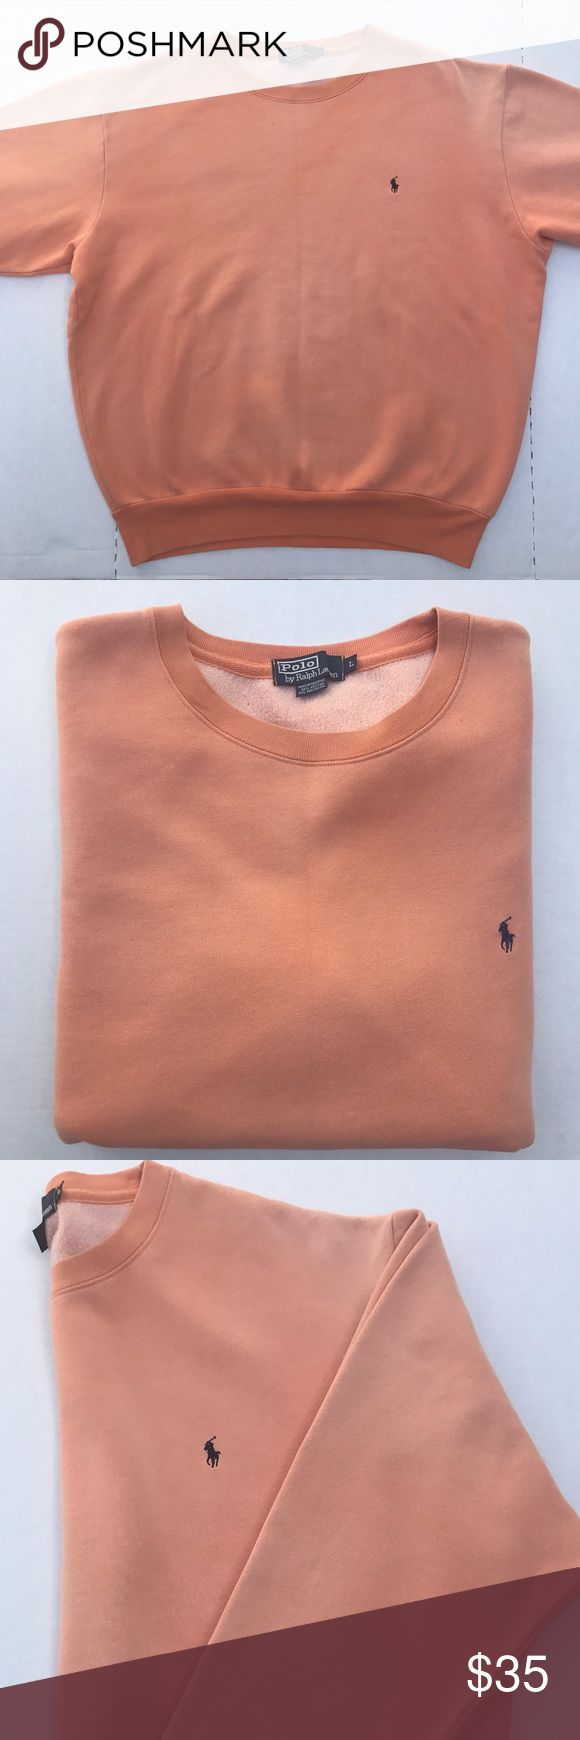 Polo Ralph Lauren Crewneck Super comfortable Polo sweatshirt in like a salmon colourway! Very nice! Polo by Ralph Lauren Shirts Sweatshirts & Hoodies